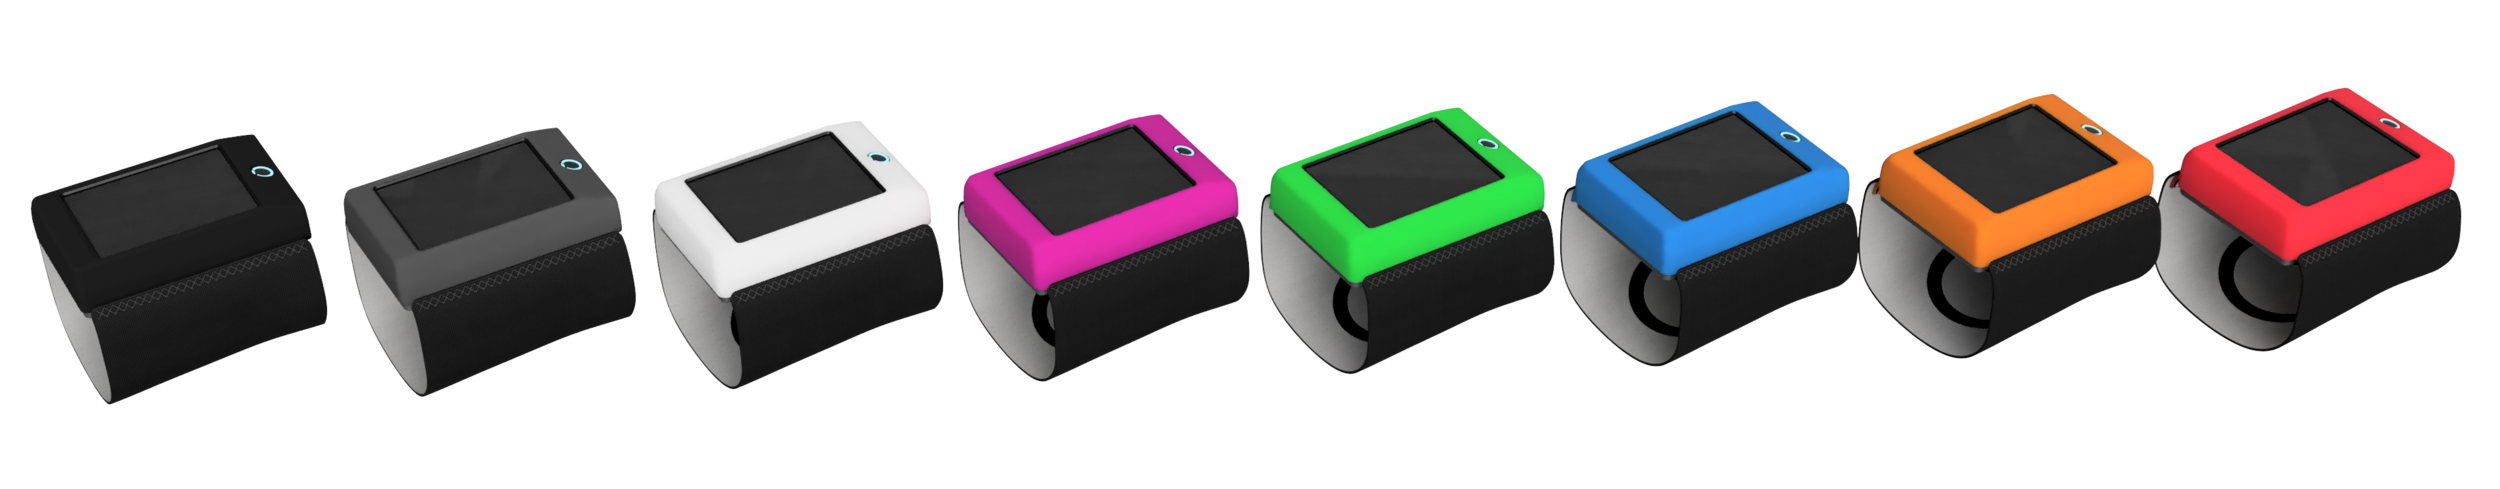 extra-wrist-mounts-with-red copy-cropped.png